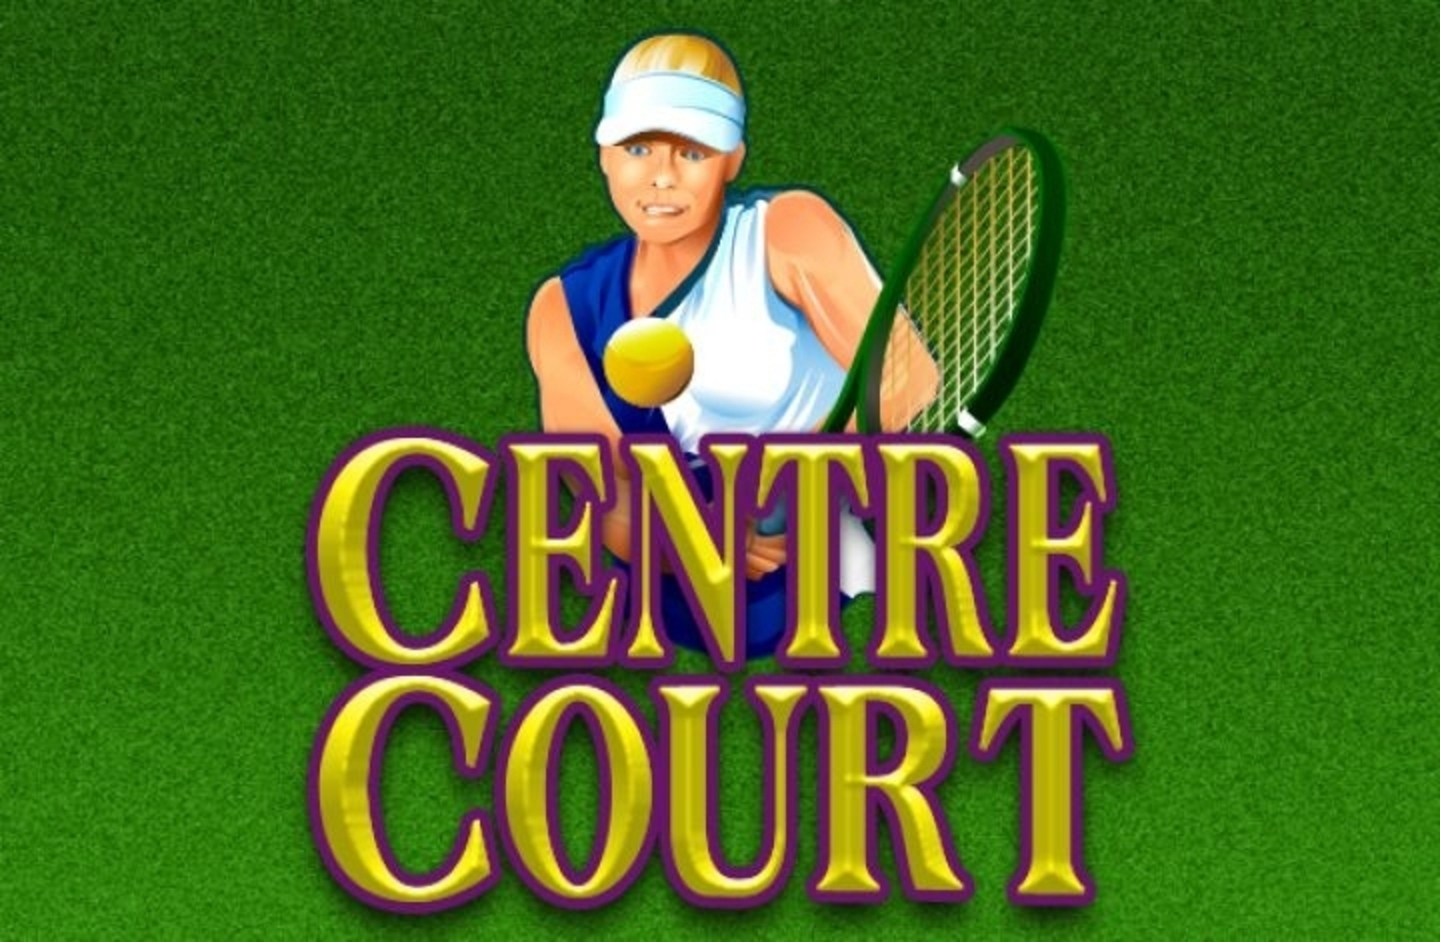 Play Centre Court Free Casino Slot Game by Microgaming